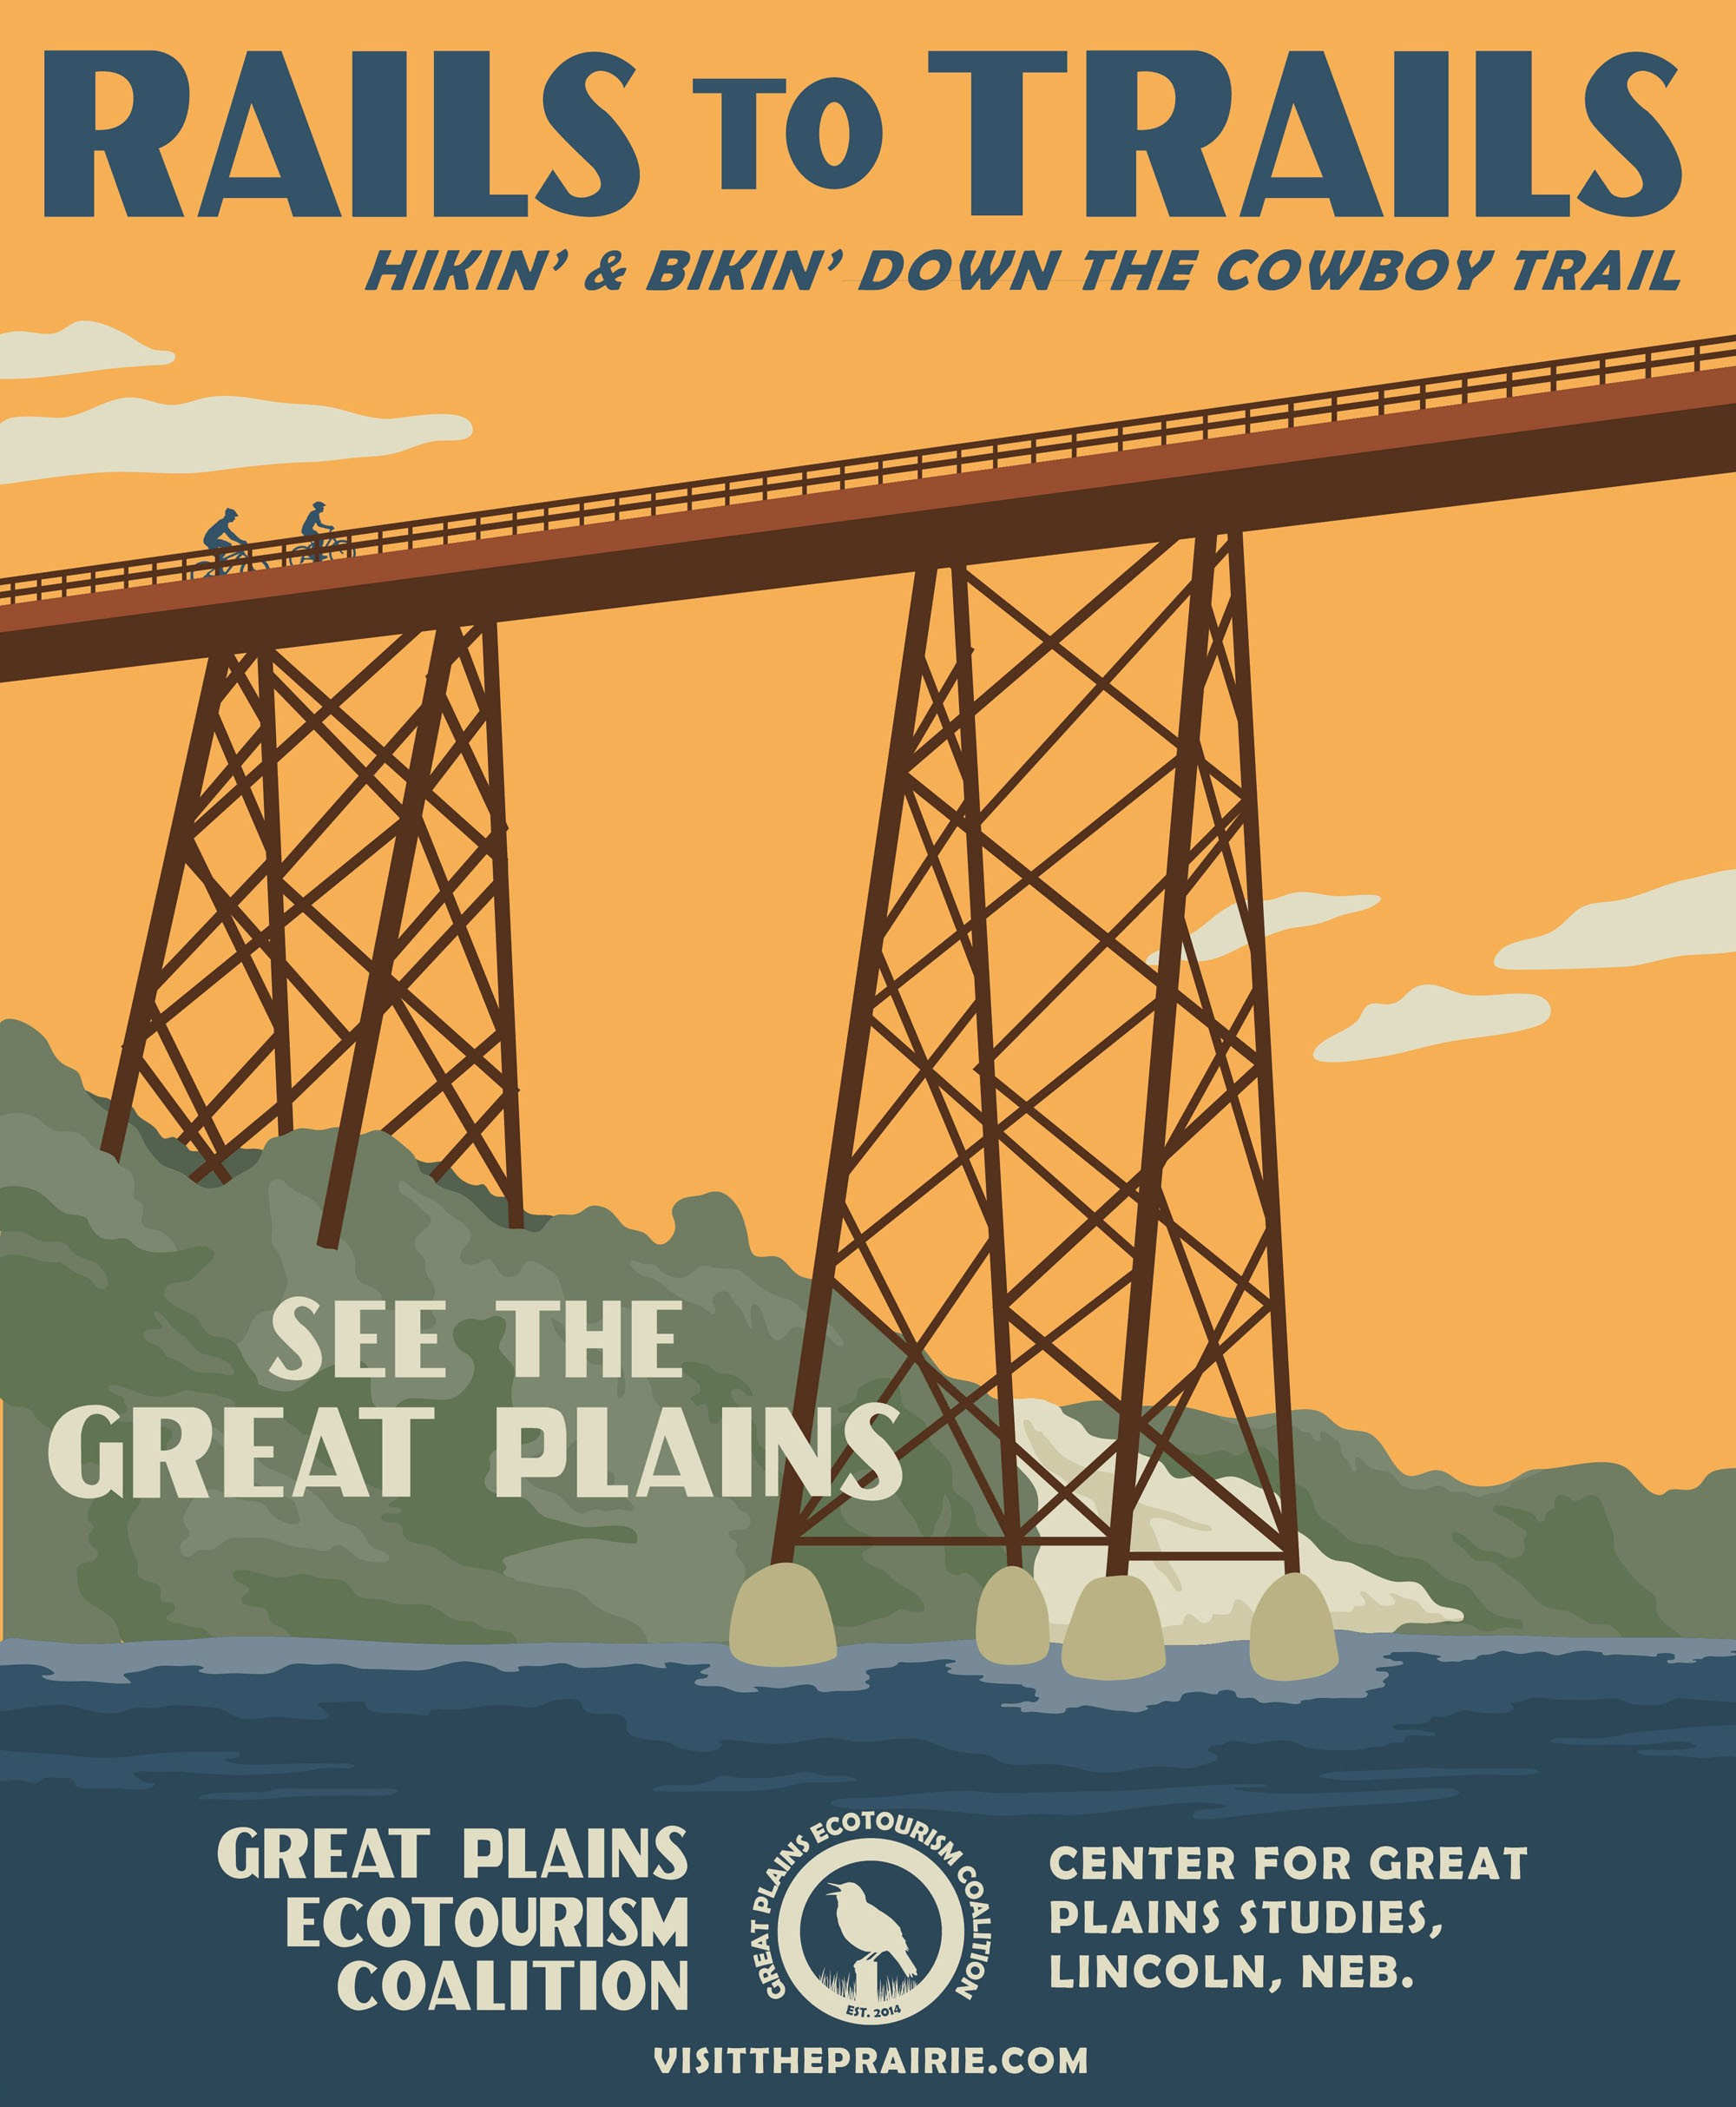 Rails To Trails Poster From The Great Plains Ecotourism Coalition